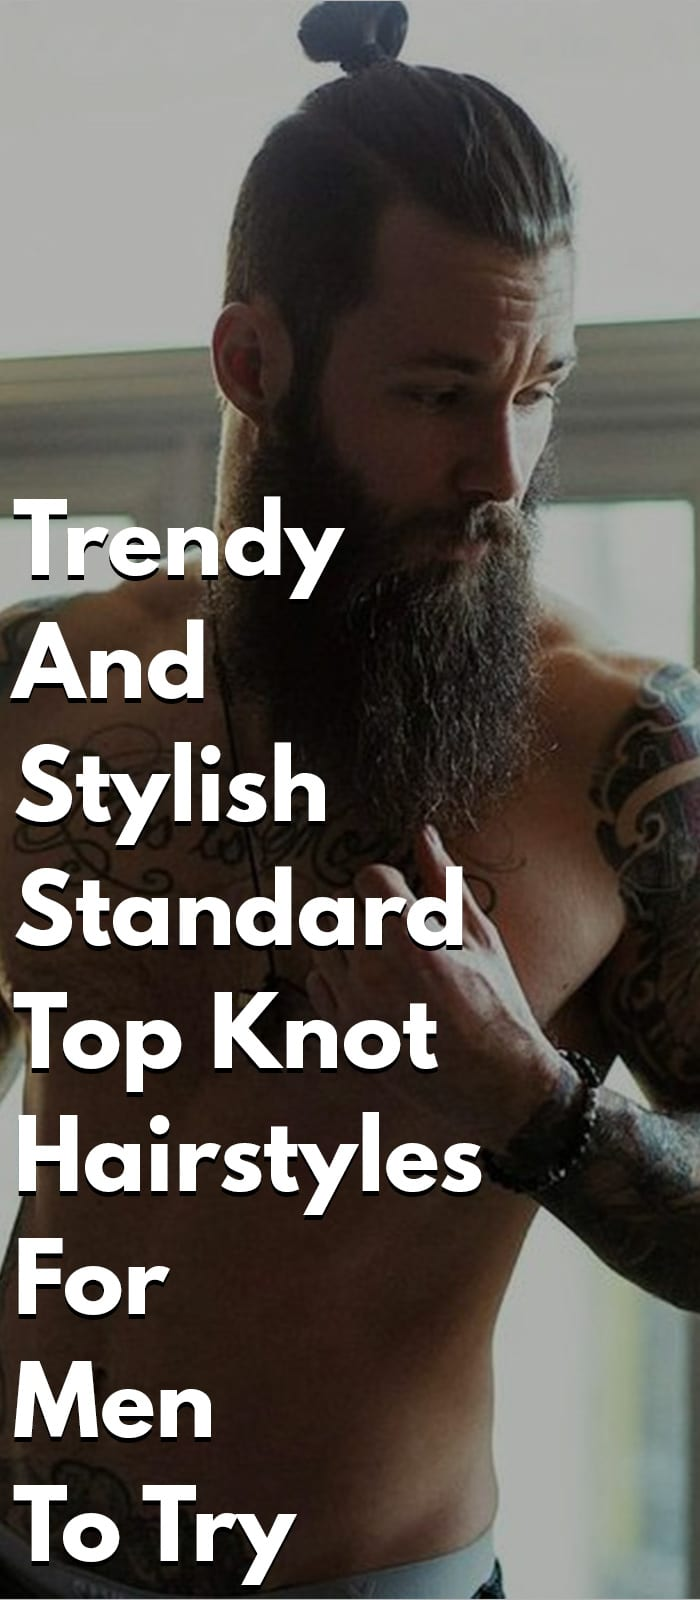 Standard Top Knot Hairstyles For Men To Try